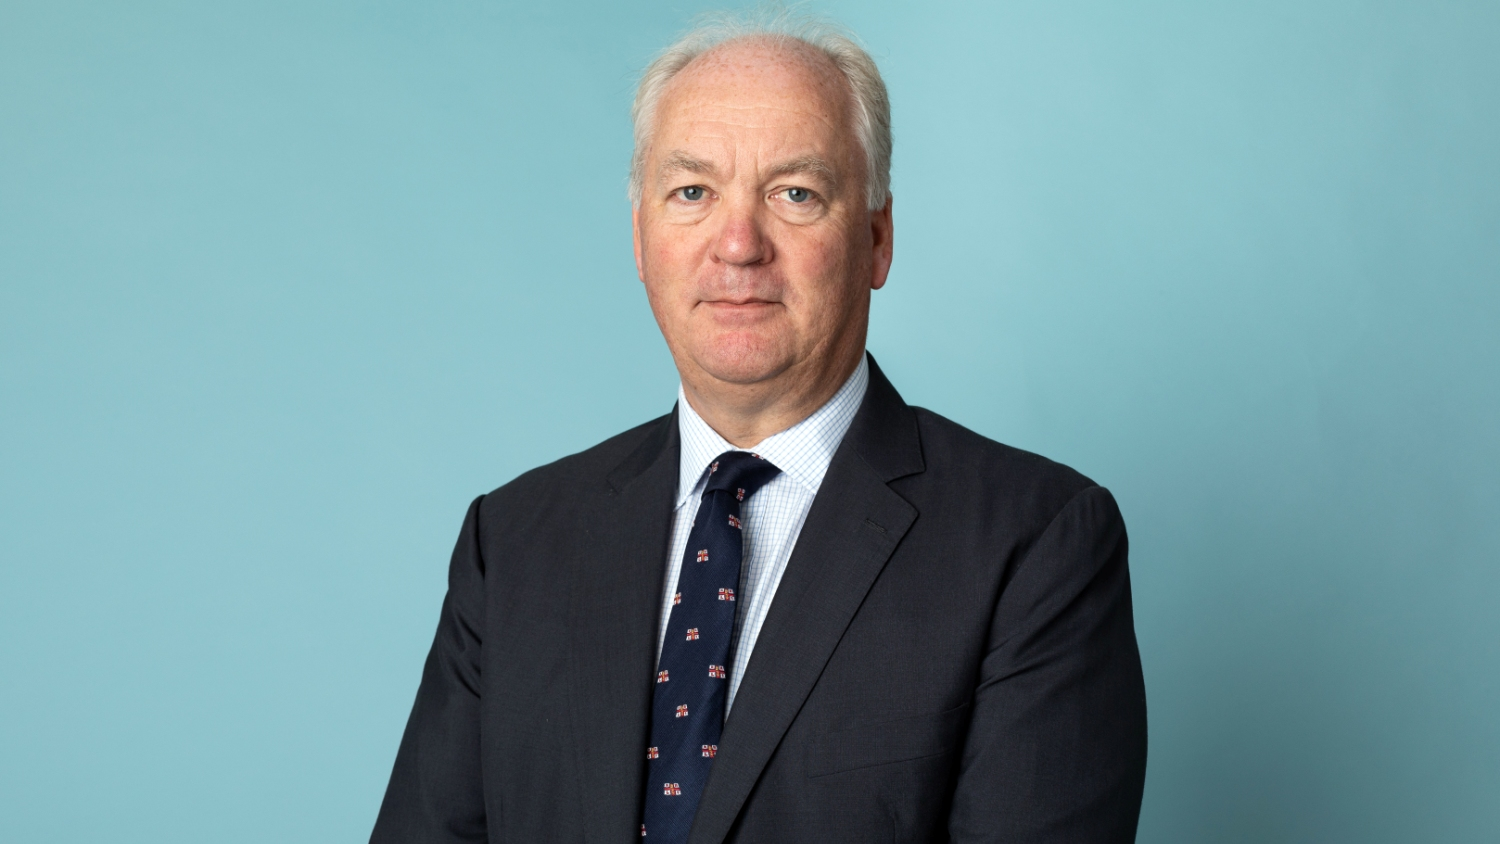 Mark Dowie, Chief Executive of the RNLI